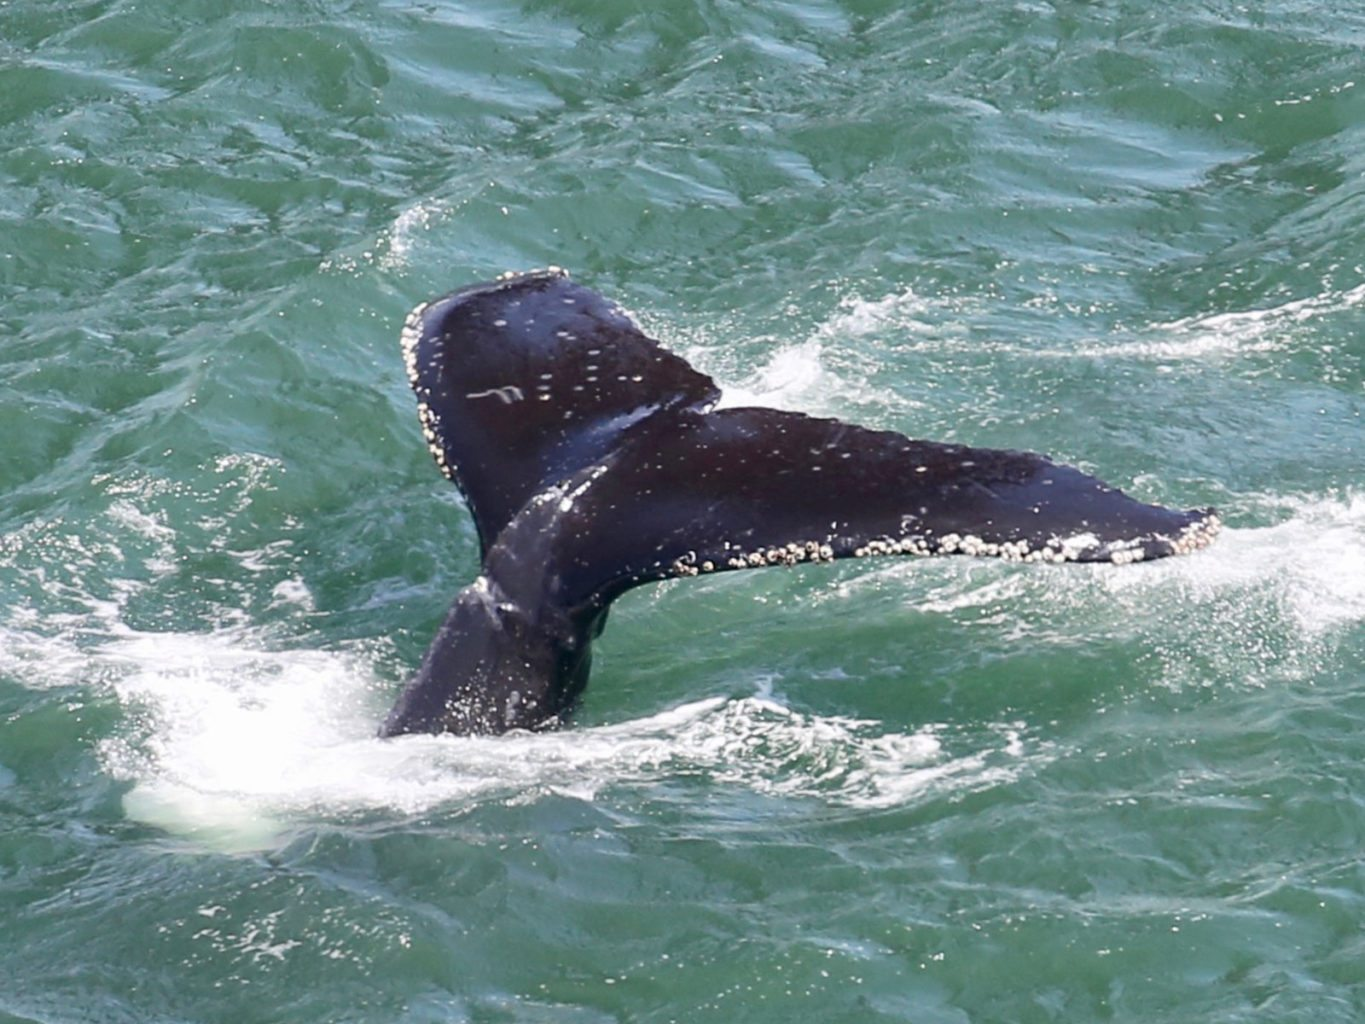 A whale is seen underneath the Golden Gate Bridge with entanglement scars on its tail. (Courtesy Joe Meuleman/Golden Gate Cetacean Research)